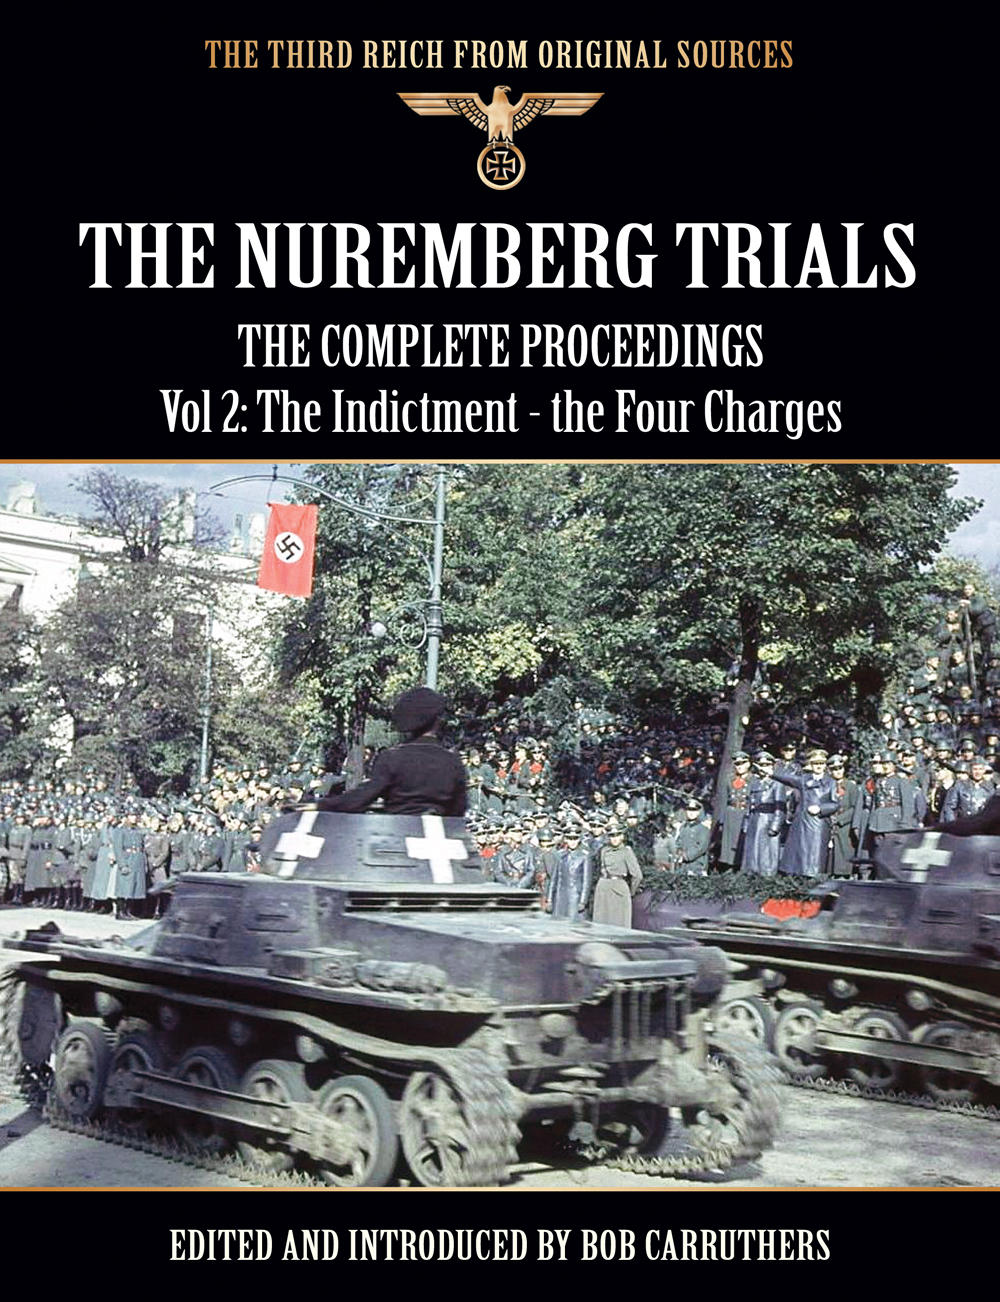 The Nuremberg Trials - The Complete Proceedings Vol 2: The Indictment - the Four Charges By: Bob Carruthers